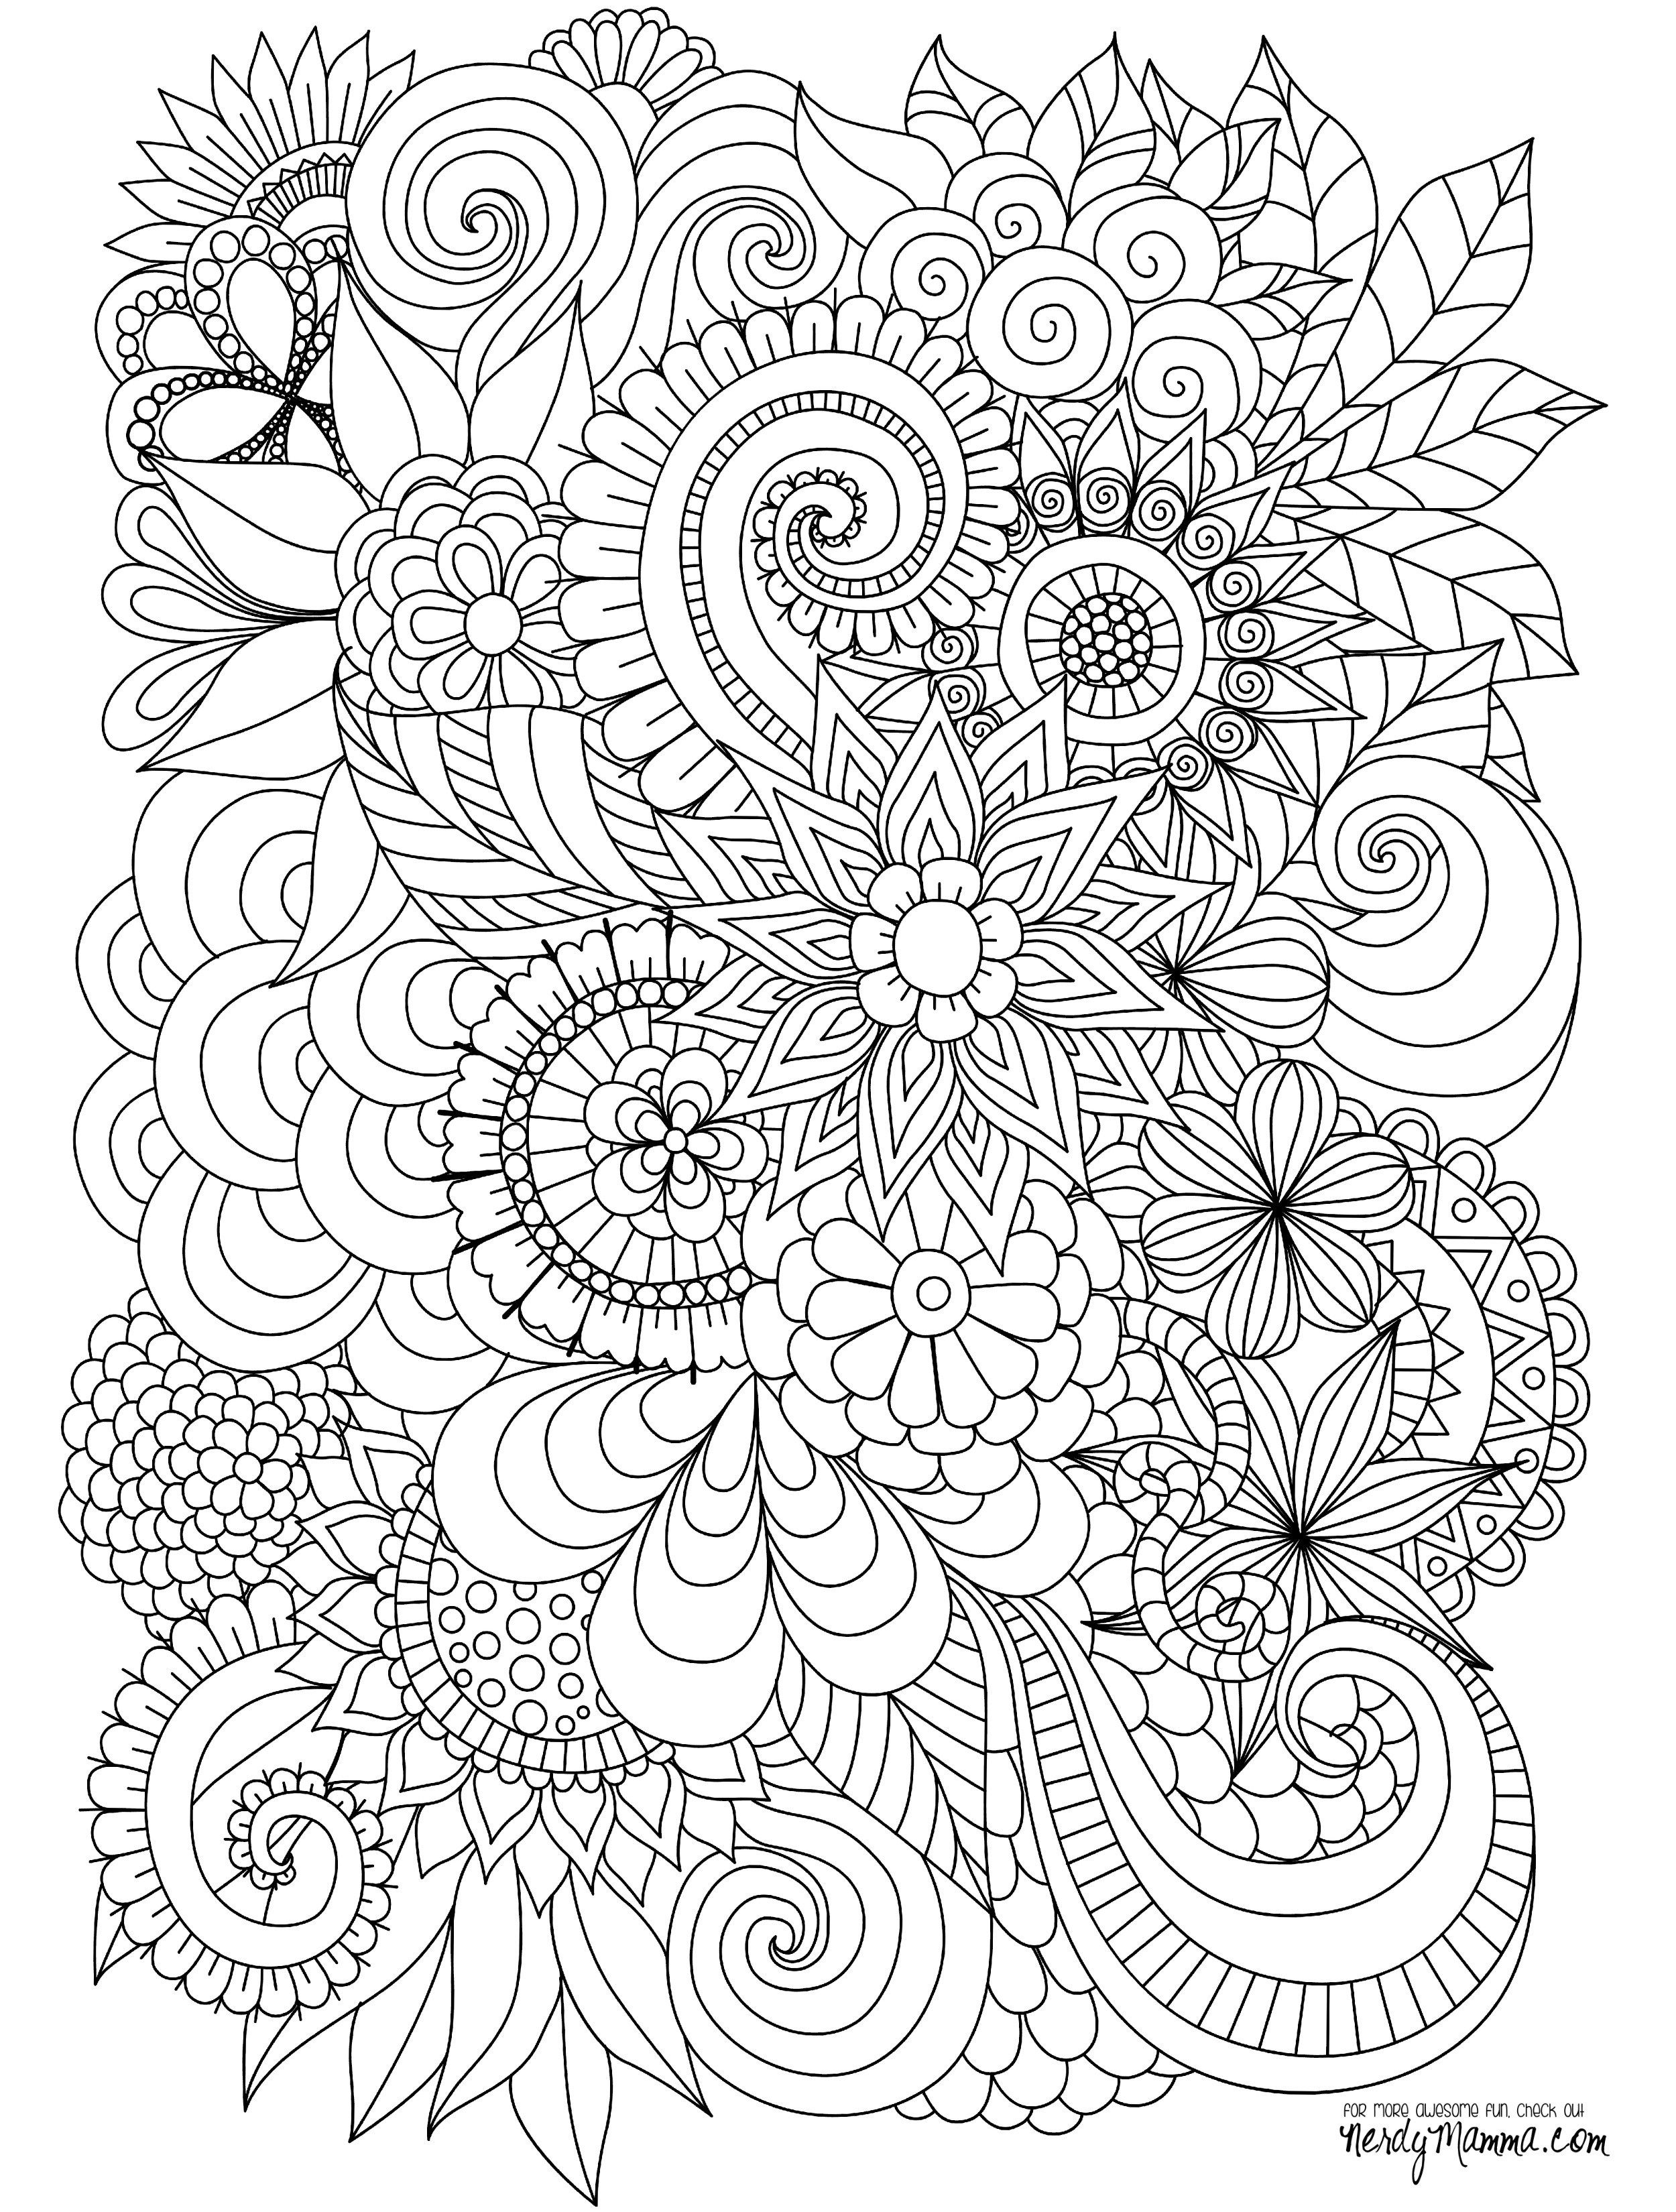 final fantasy coloring pages Download-Flowers Abstract Coloring pages colouring adult detailed advanced printable Kleuren voor volwassenen coloriage pour adulte anti stress kleurplaat voor 5-c